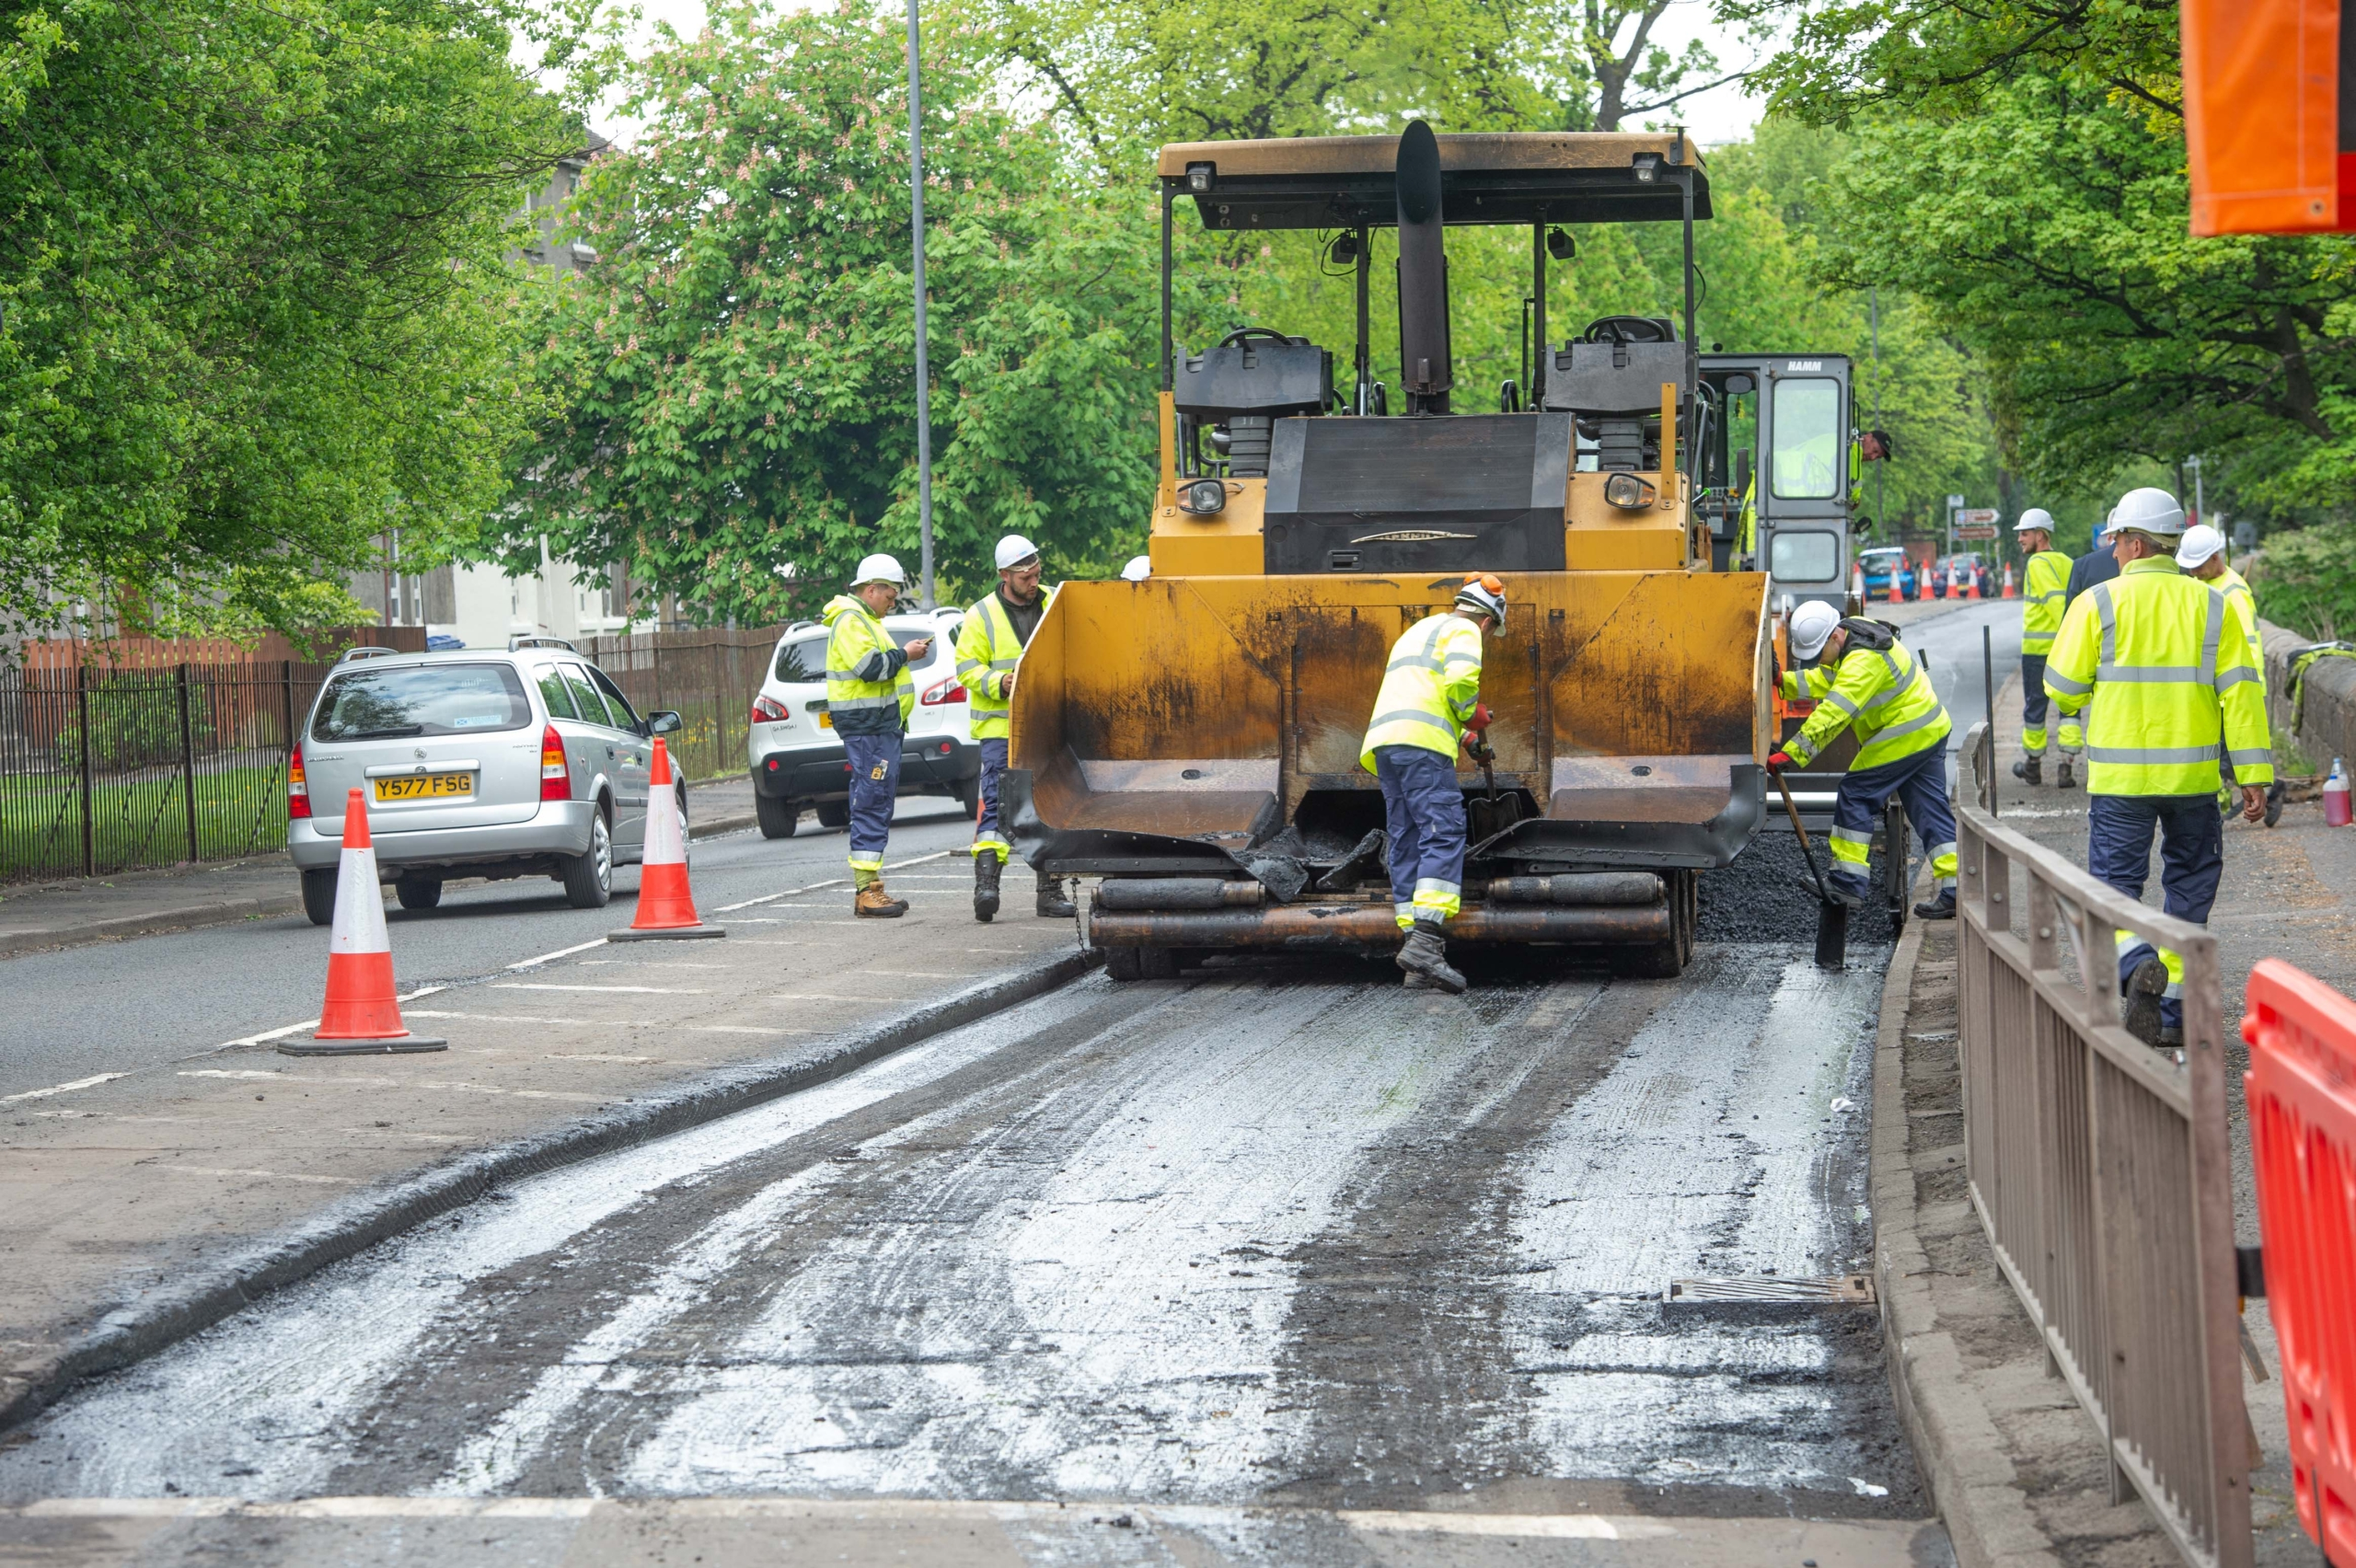 Works taking place at Inchinnan road (2)